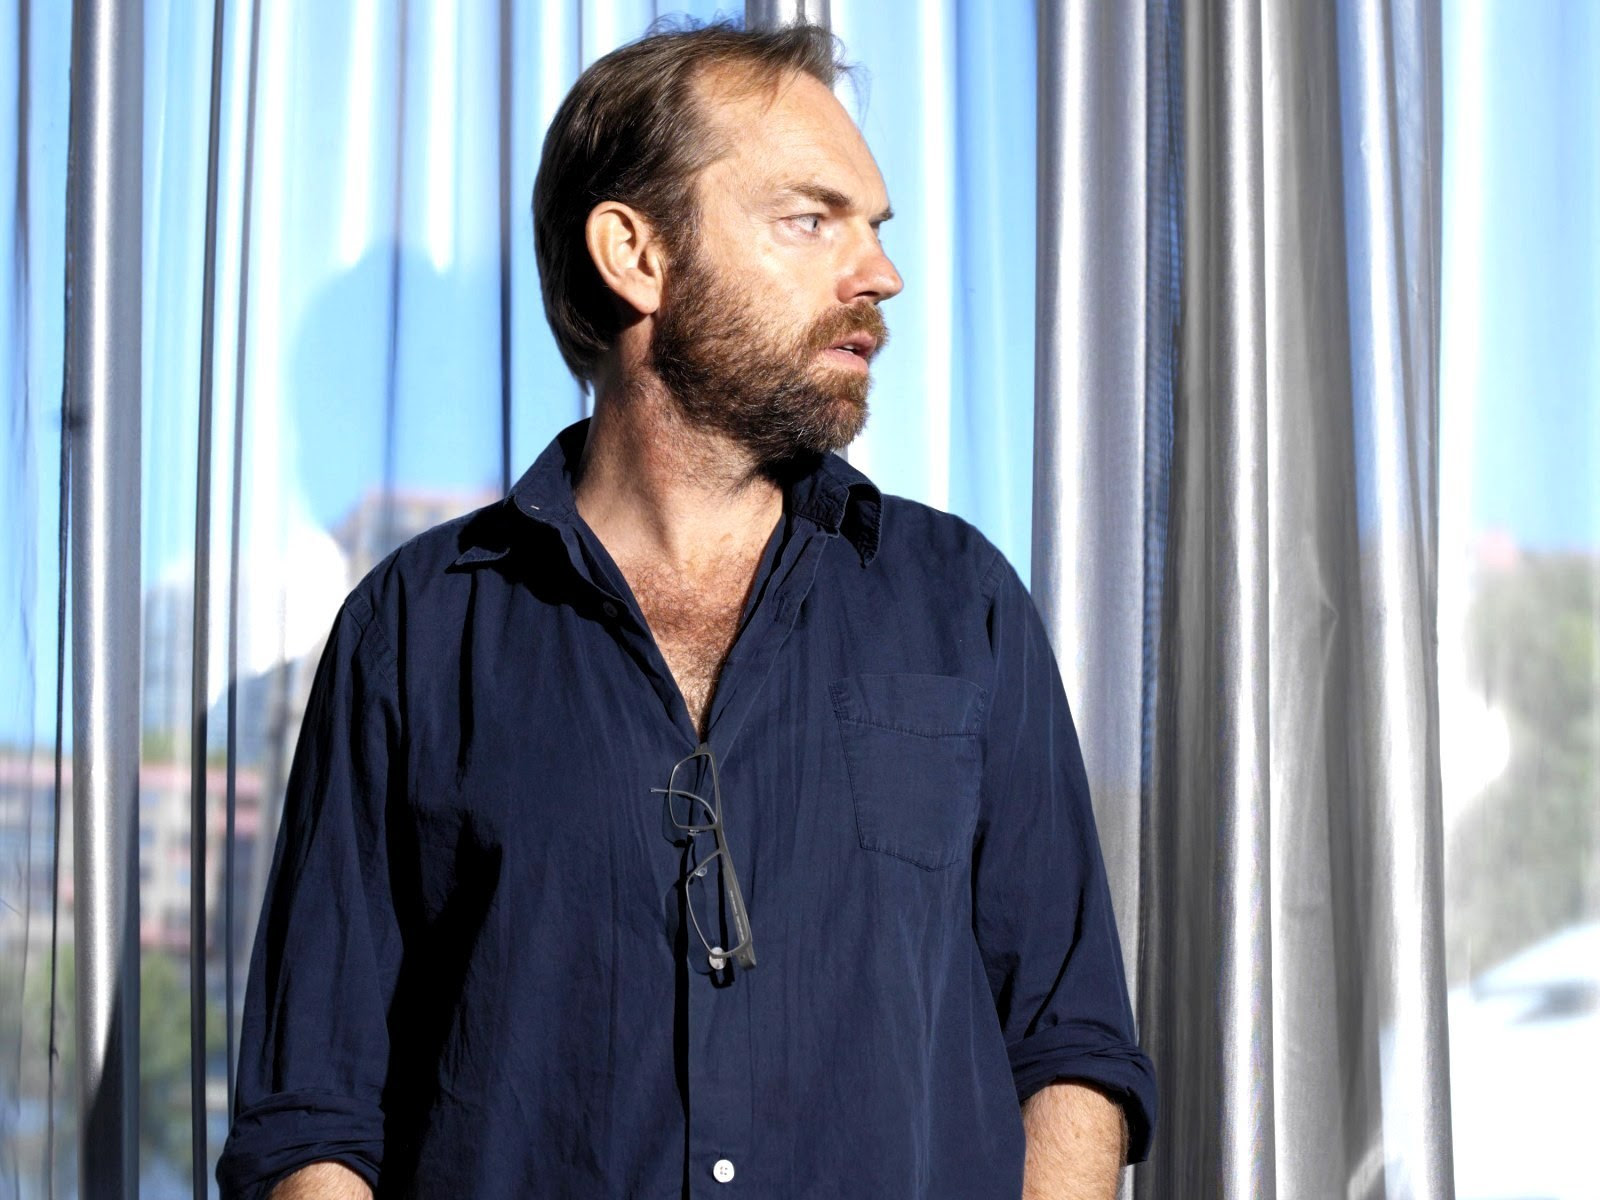 Hugo Weaving in a blue shirt | Tacky Harper's Cryptic Clues